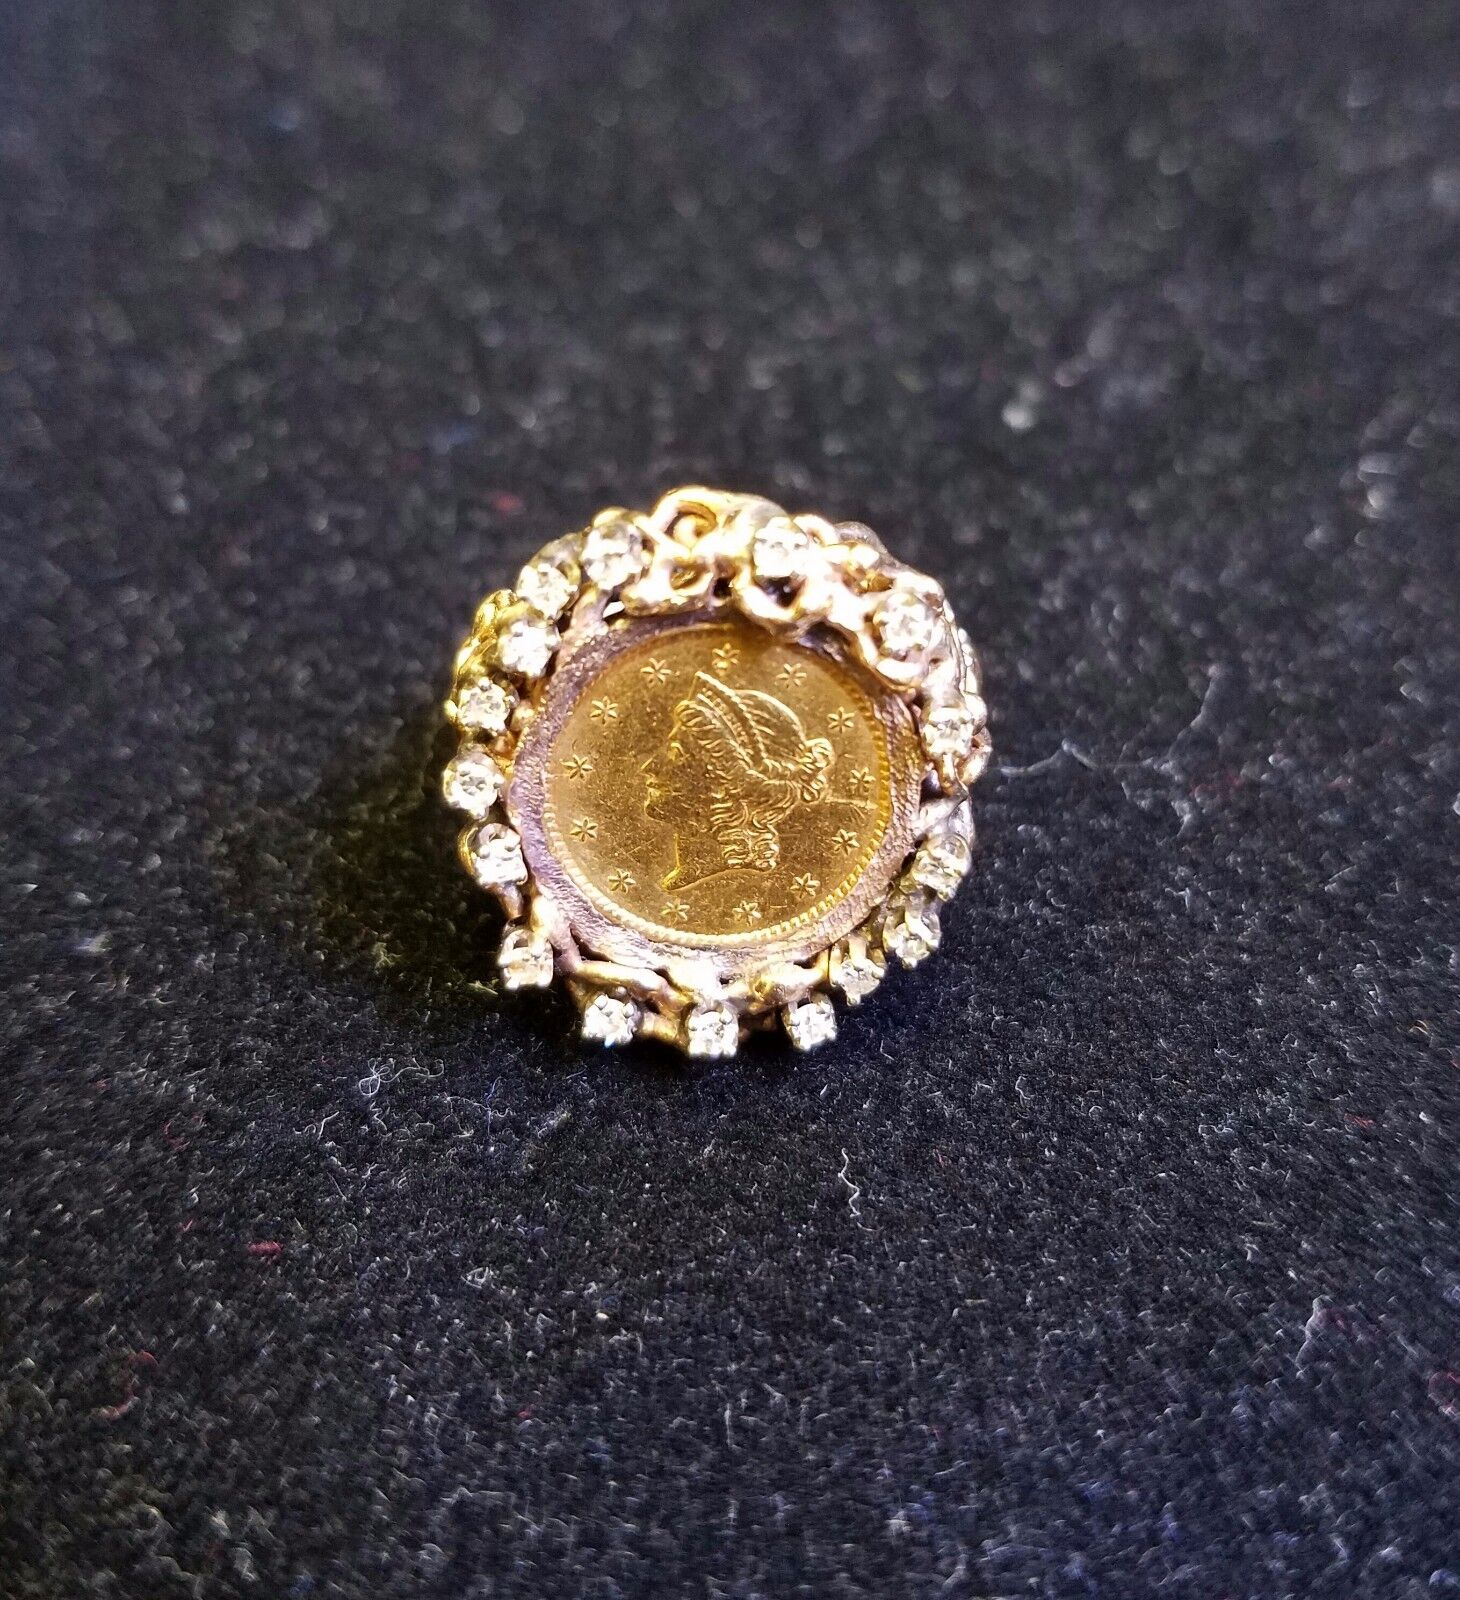 22K Fine gold 1852 Liberty Head gold Coin .25 TCW diamonds 14k gold Ring Jewelry